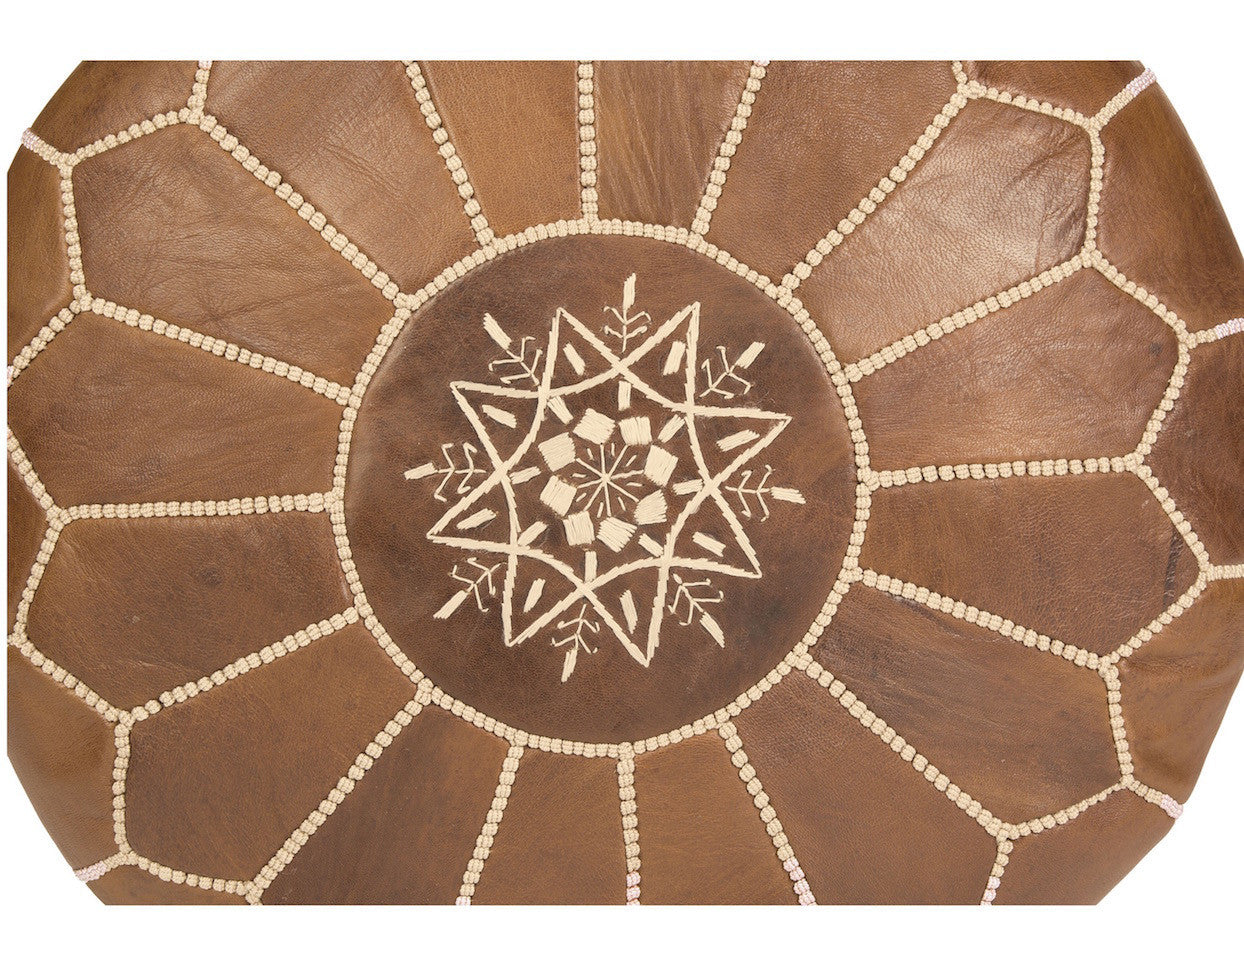 natural brown leather ottoman pouf pattern - Brown Leather Ottoman